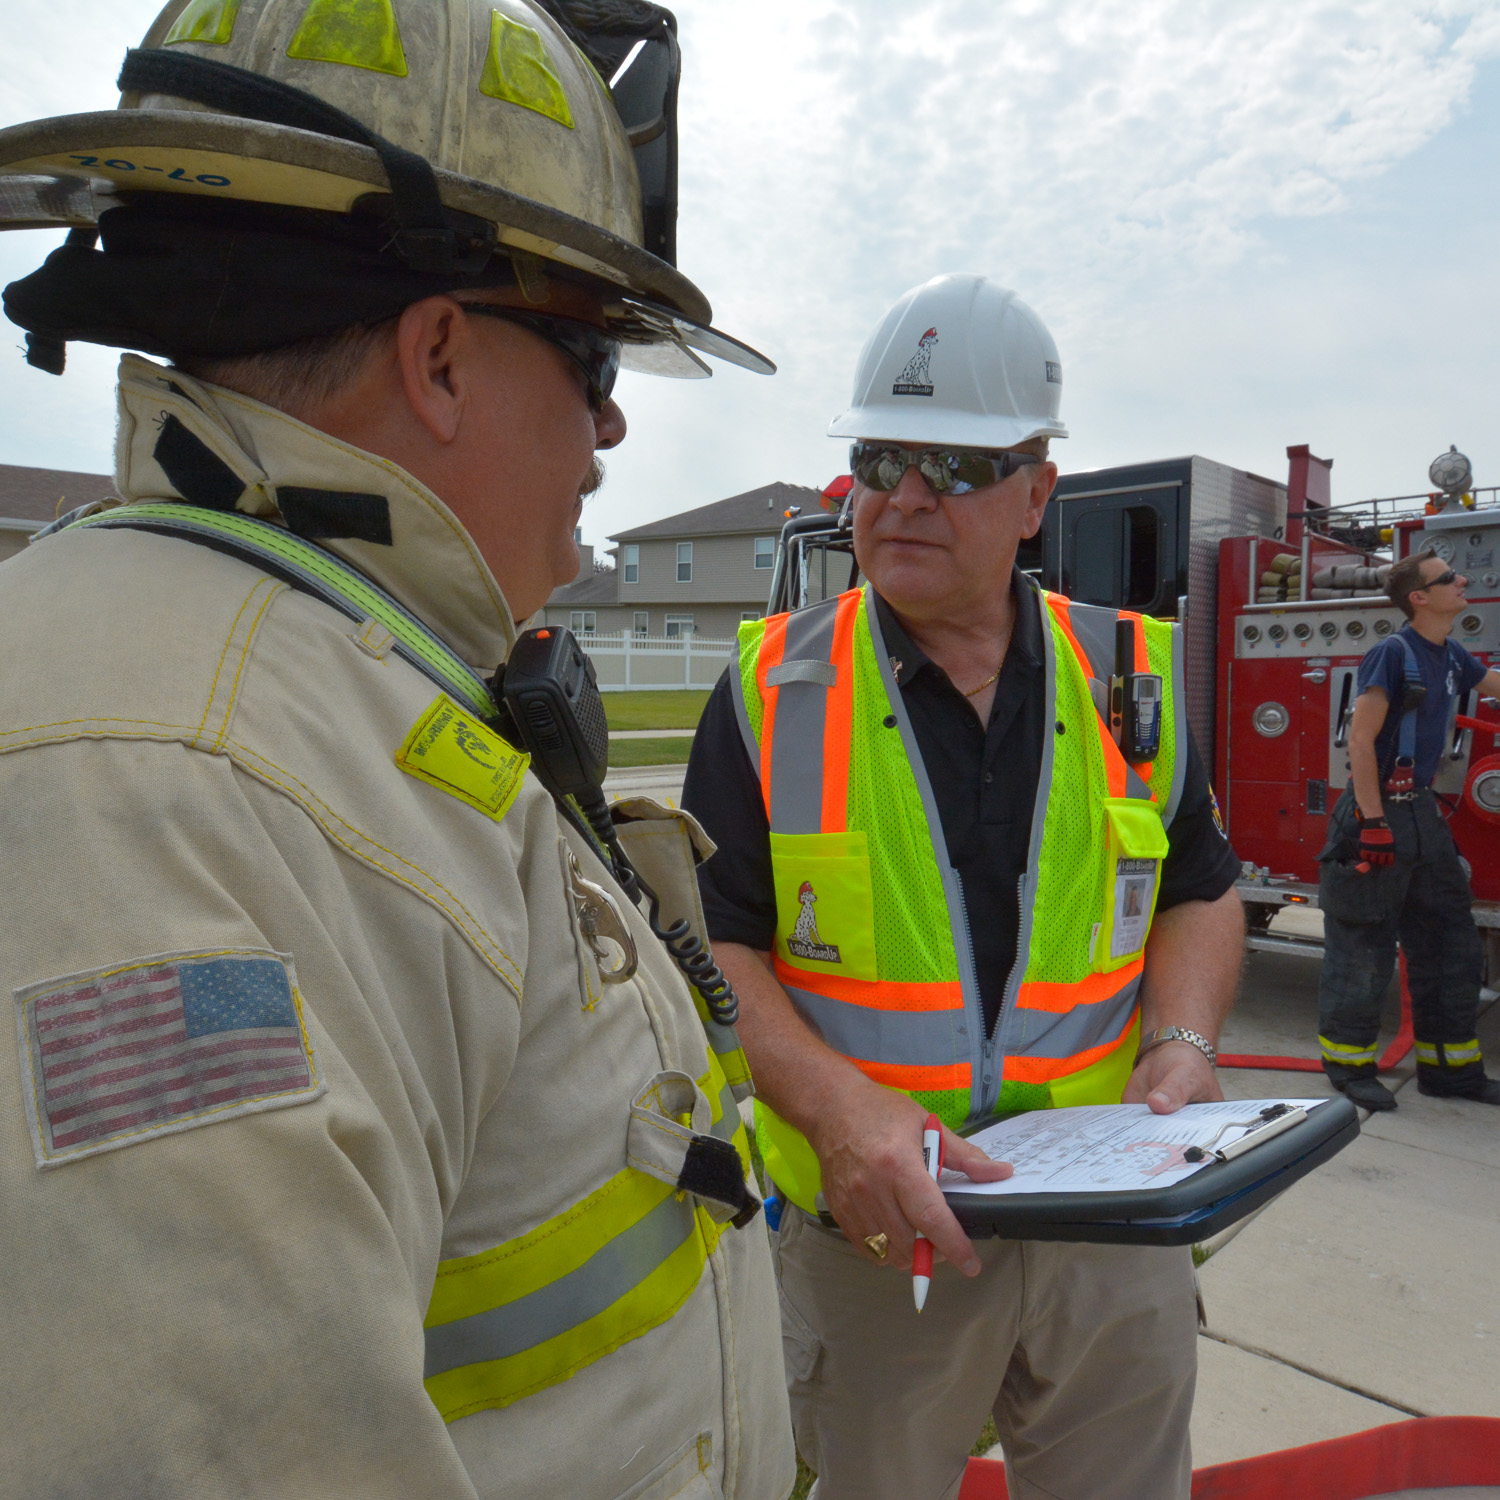 the boardup direction talking to a fire chief at the scene of a fire incident